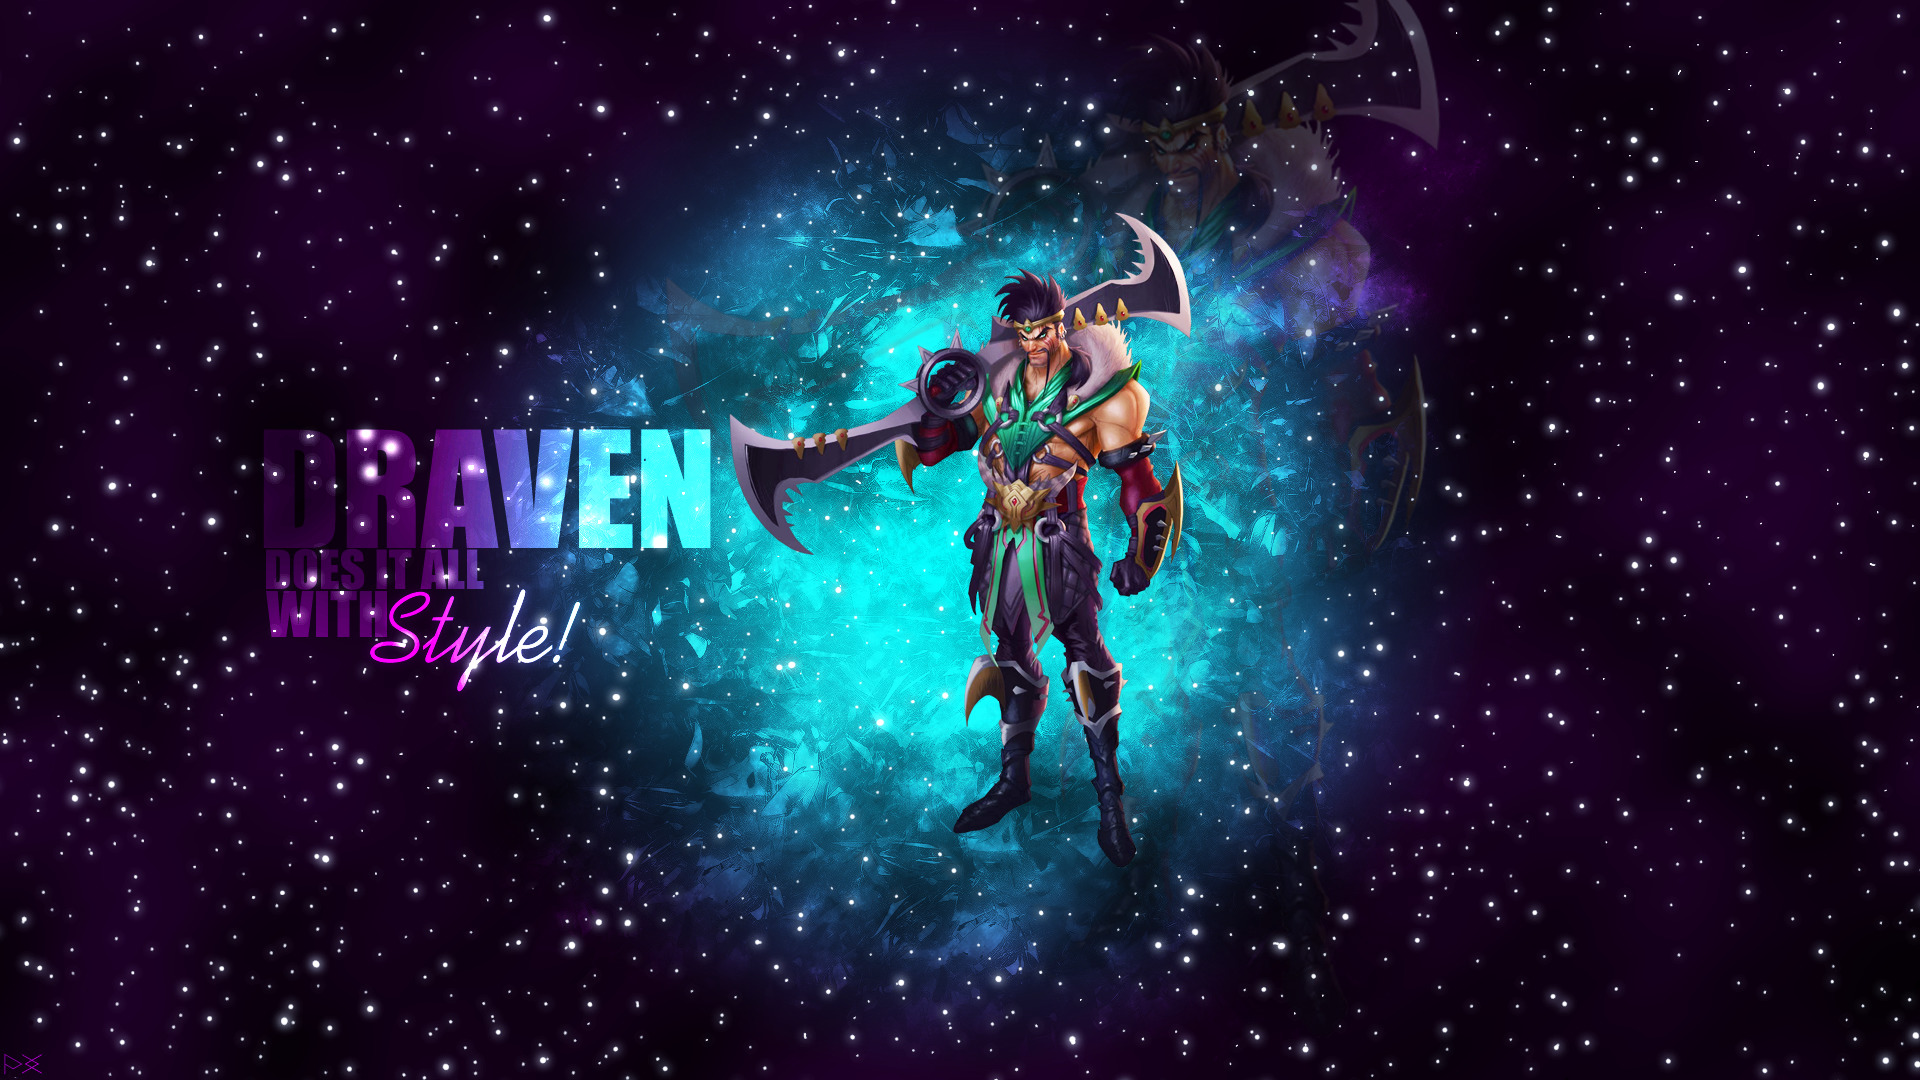 Draven And Girls Wallpaper Draven Adc Marksman League Of Legends Stars Galaxy